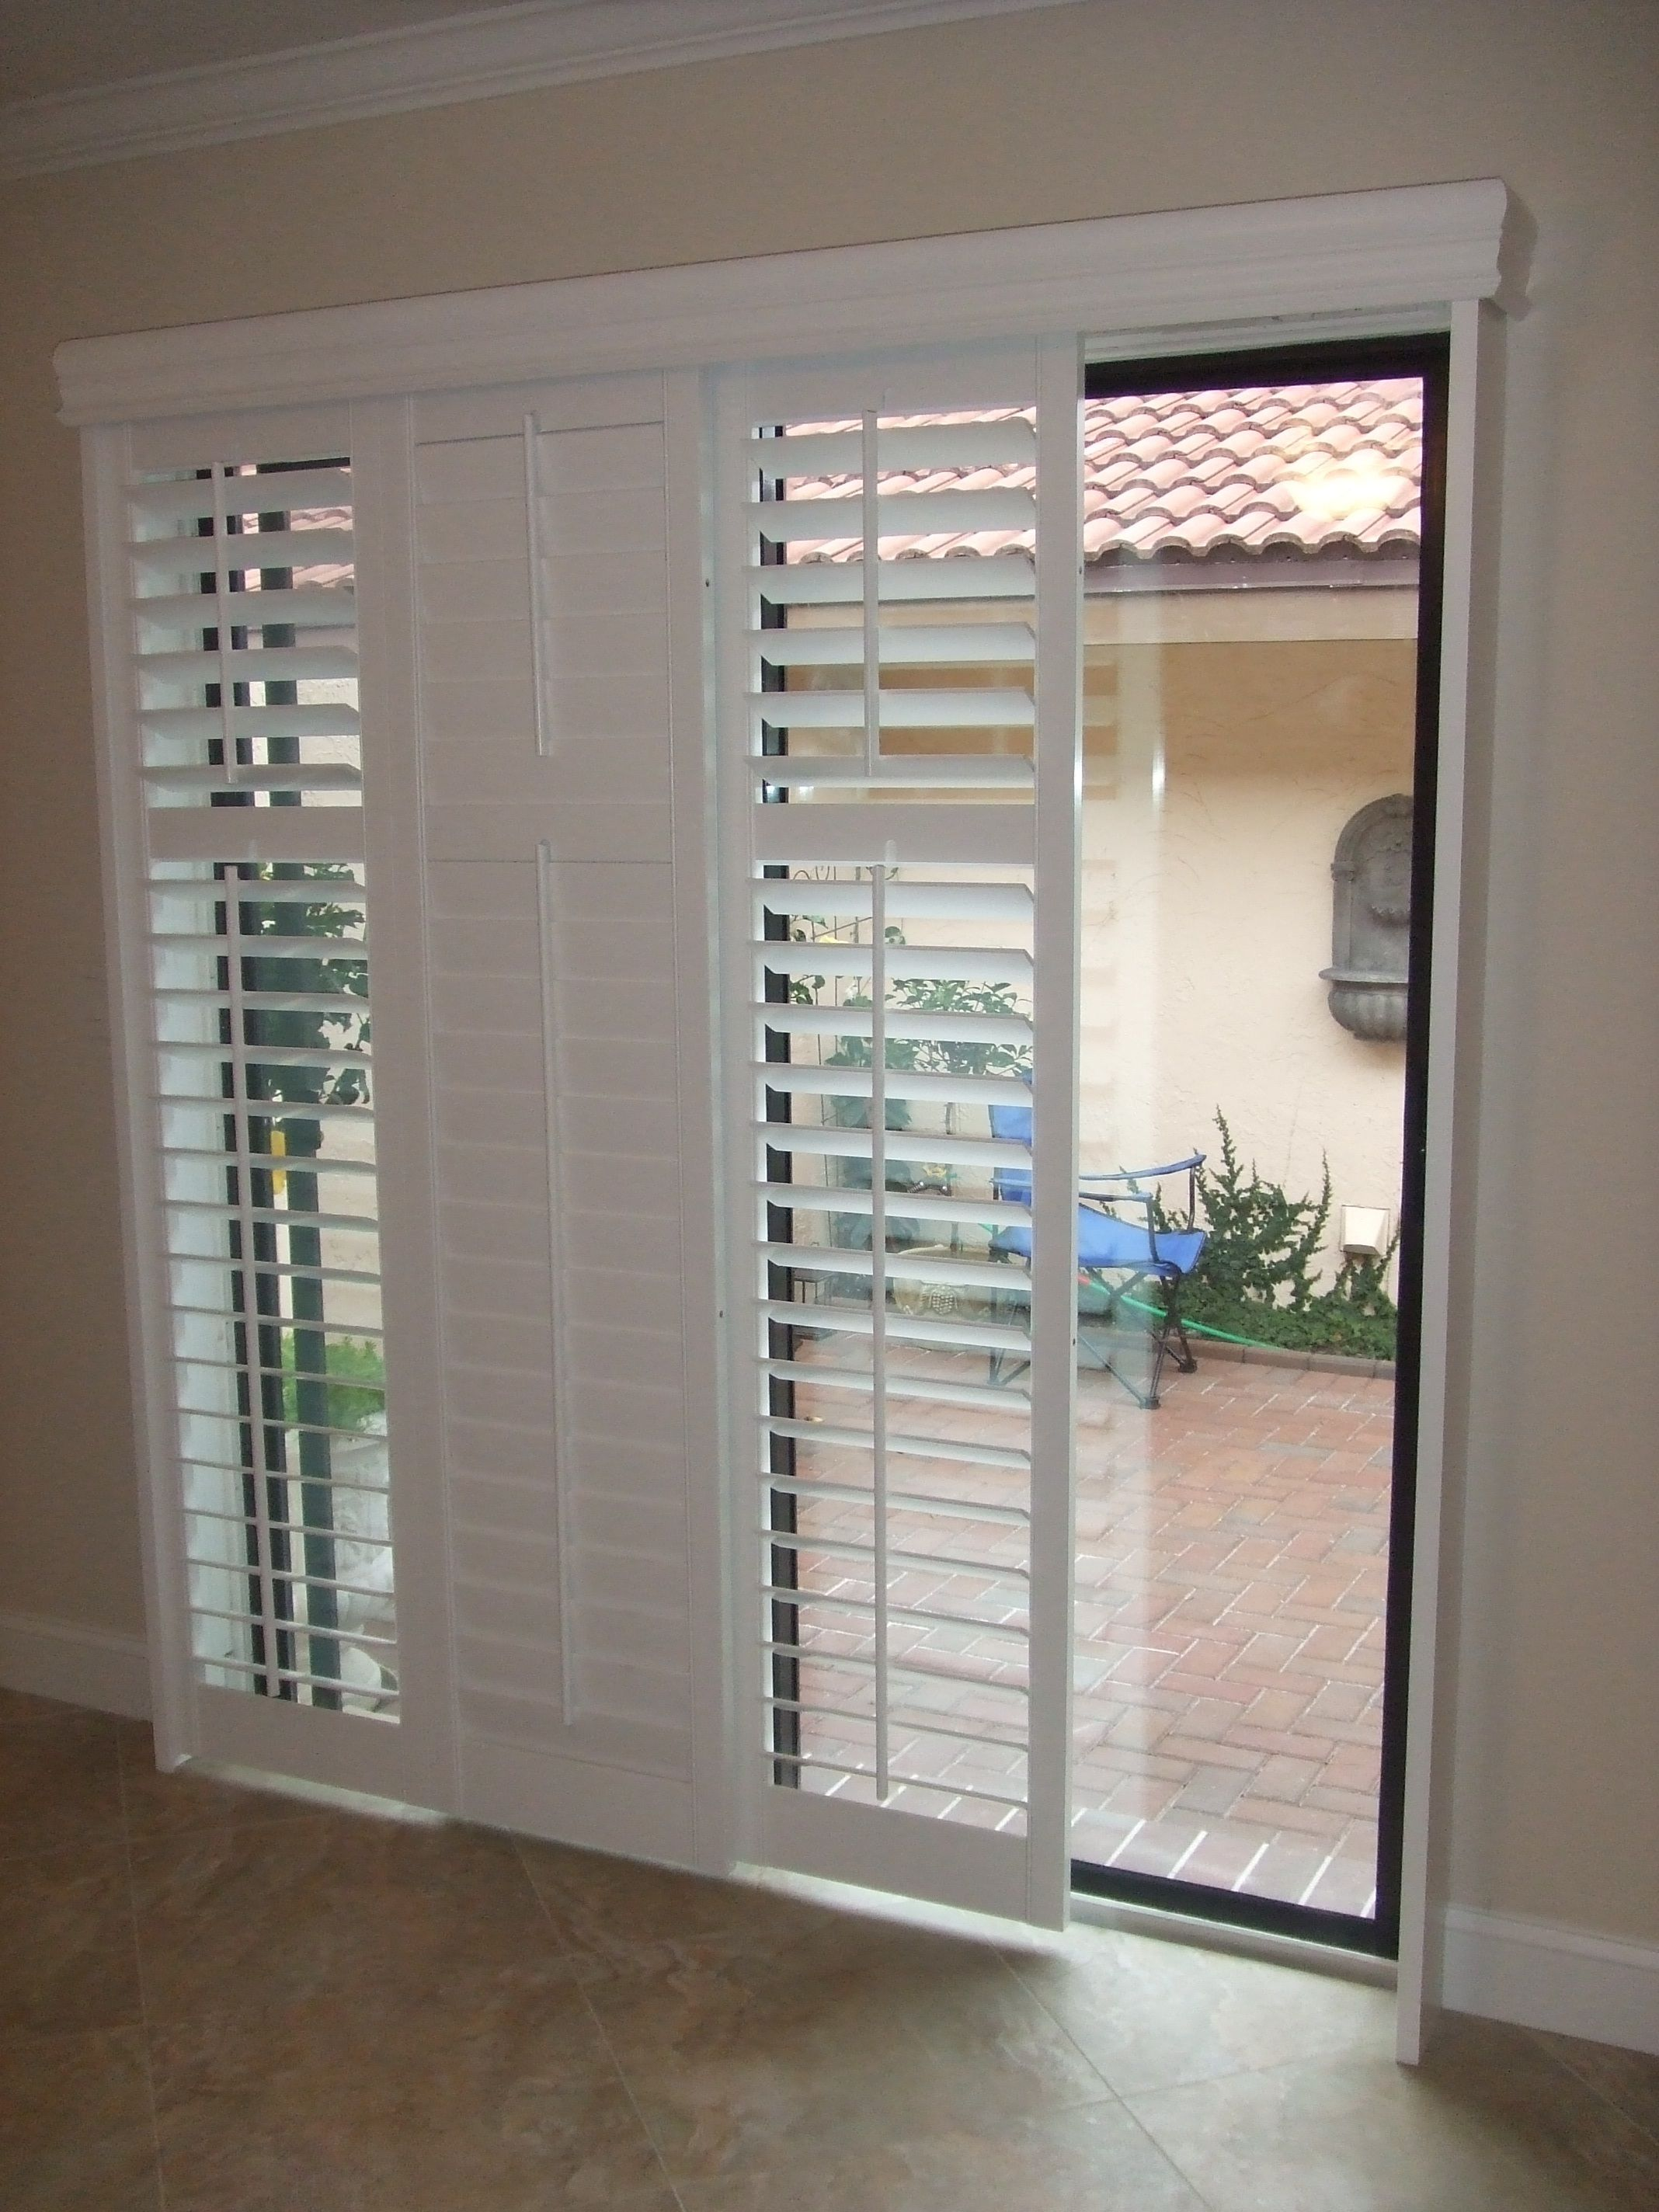 Interior Plantation Shutters Home Depot home depot window shutters interior of well home depot window shutters interior of well free Home Decor Ideas Modernize Your Sliding Glass Door With Sliding Plantation Shutters